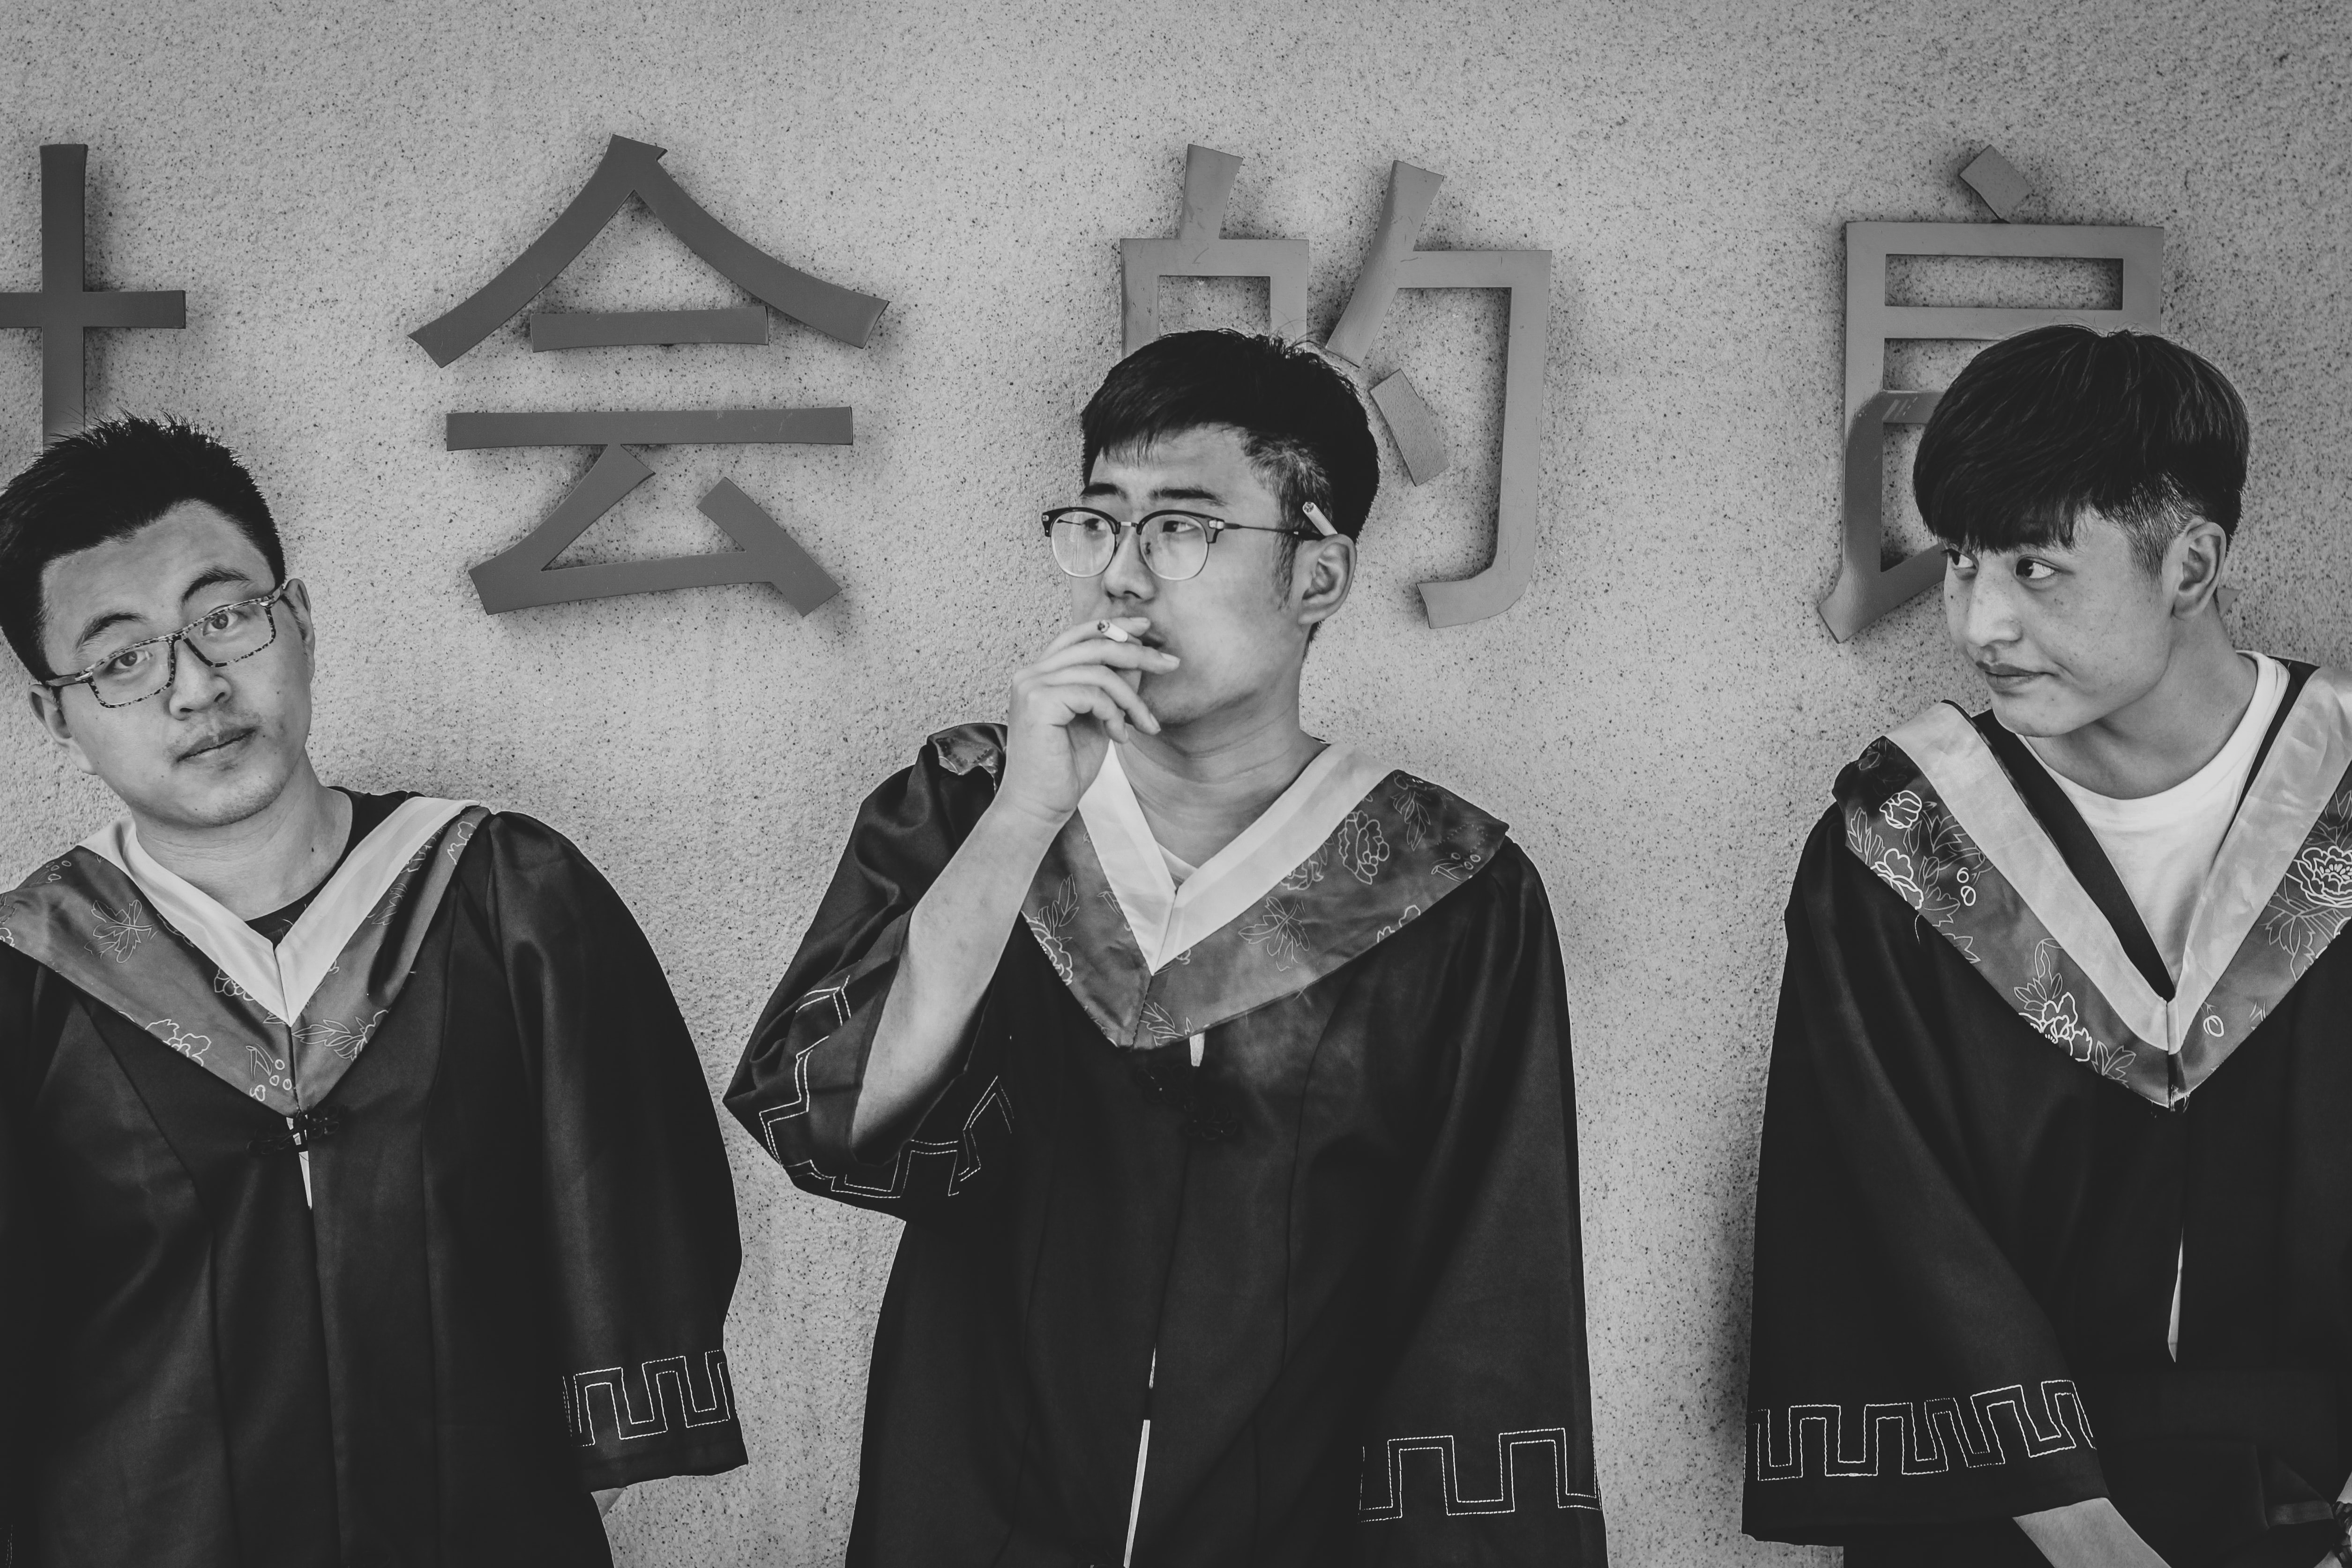 Three young men in graduation robes are standing next to a wall.